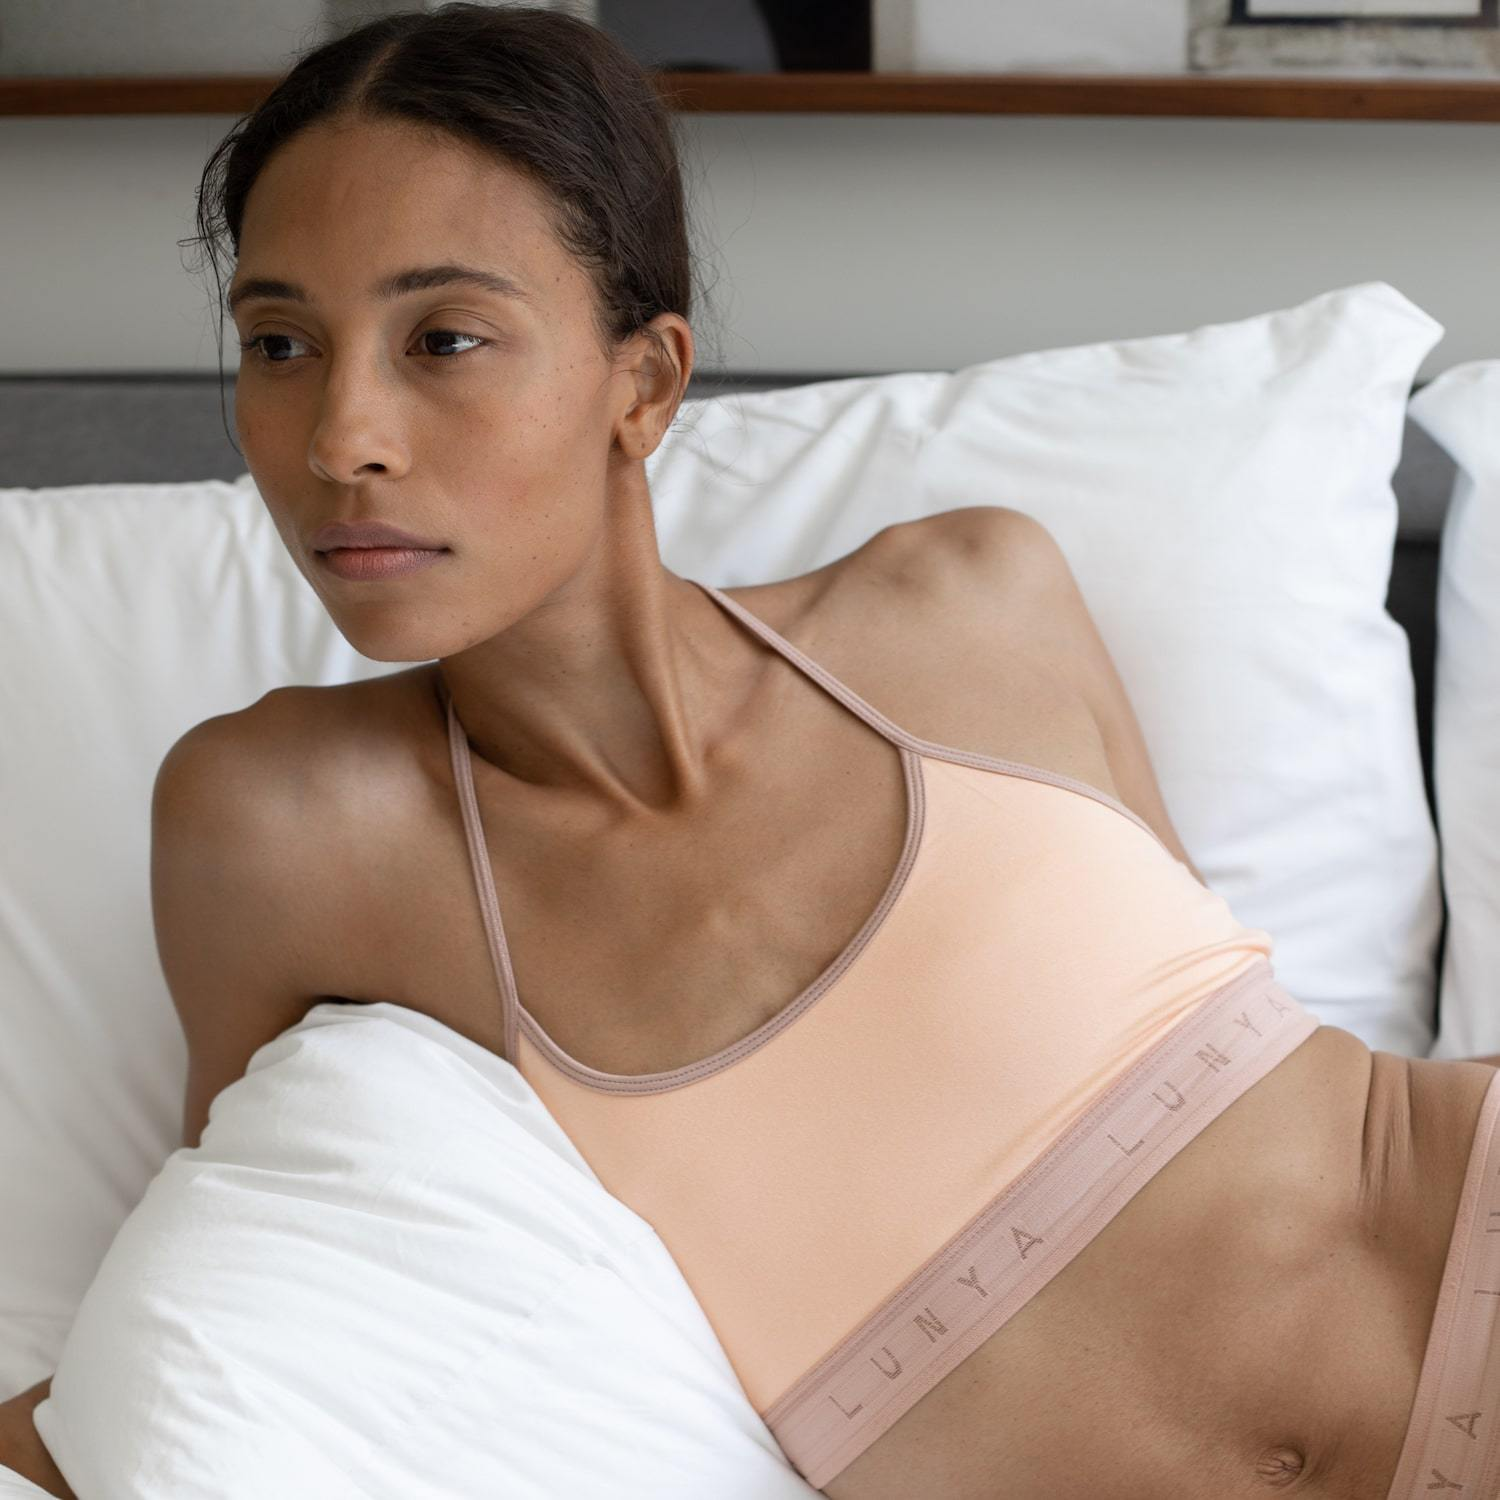 Lunya Sleepwear Supportive Modal Sleep Bralette - #Nectar/Bare